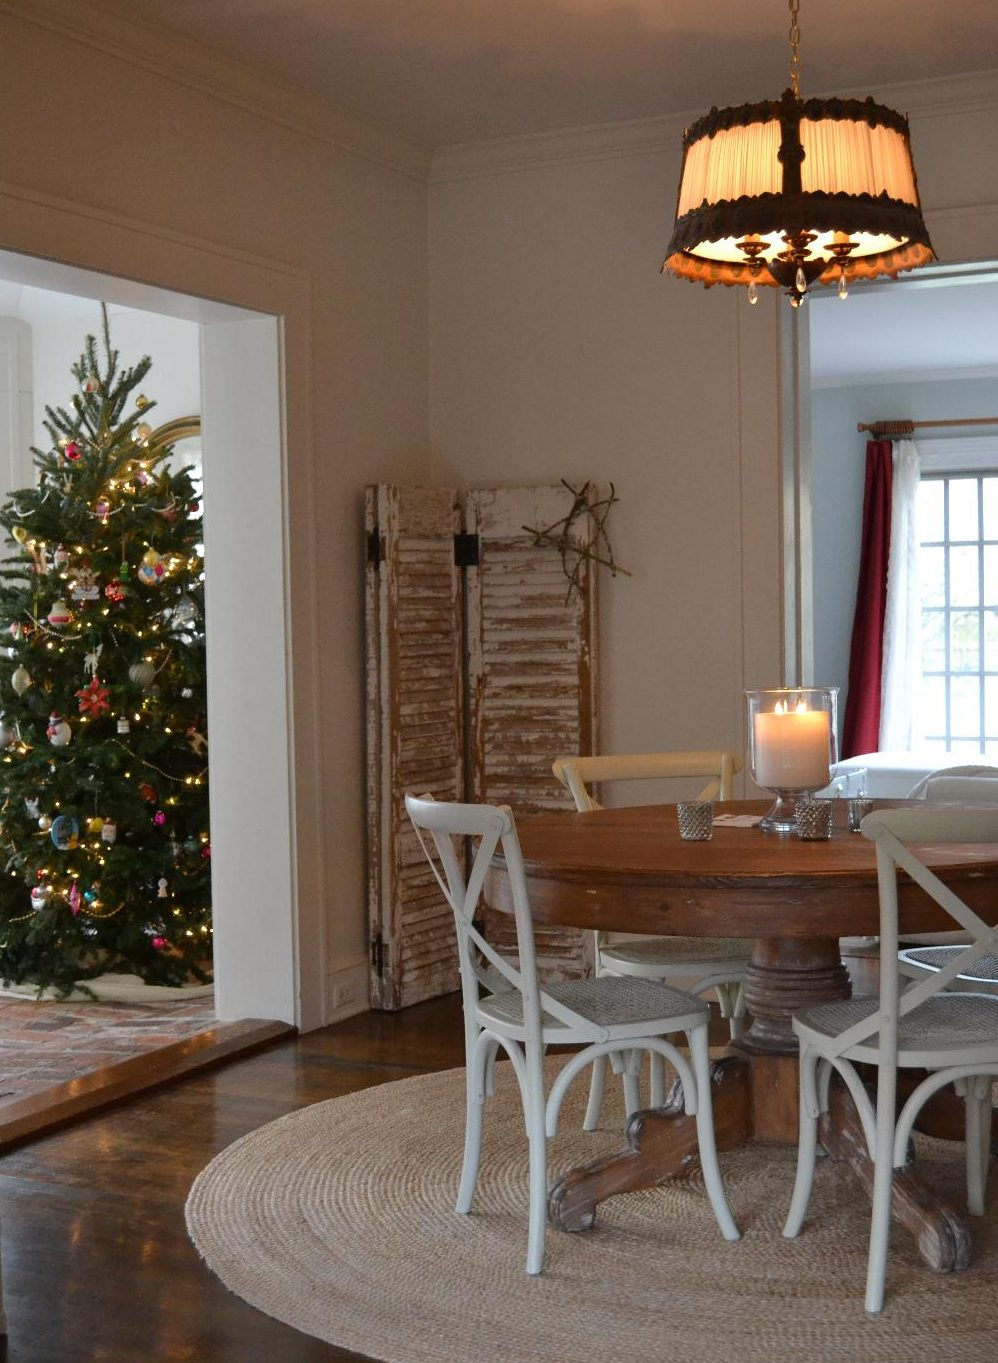 Cottage Fix blog - dining room and sun porch decked out for the holidays